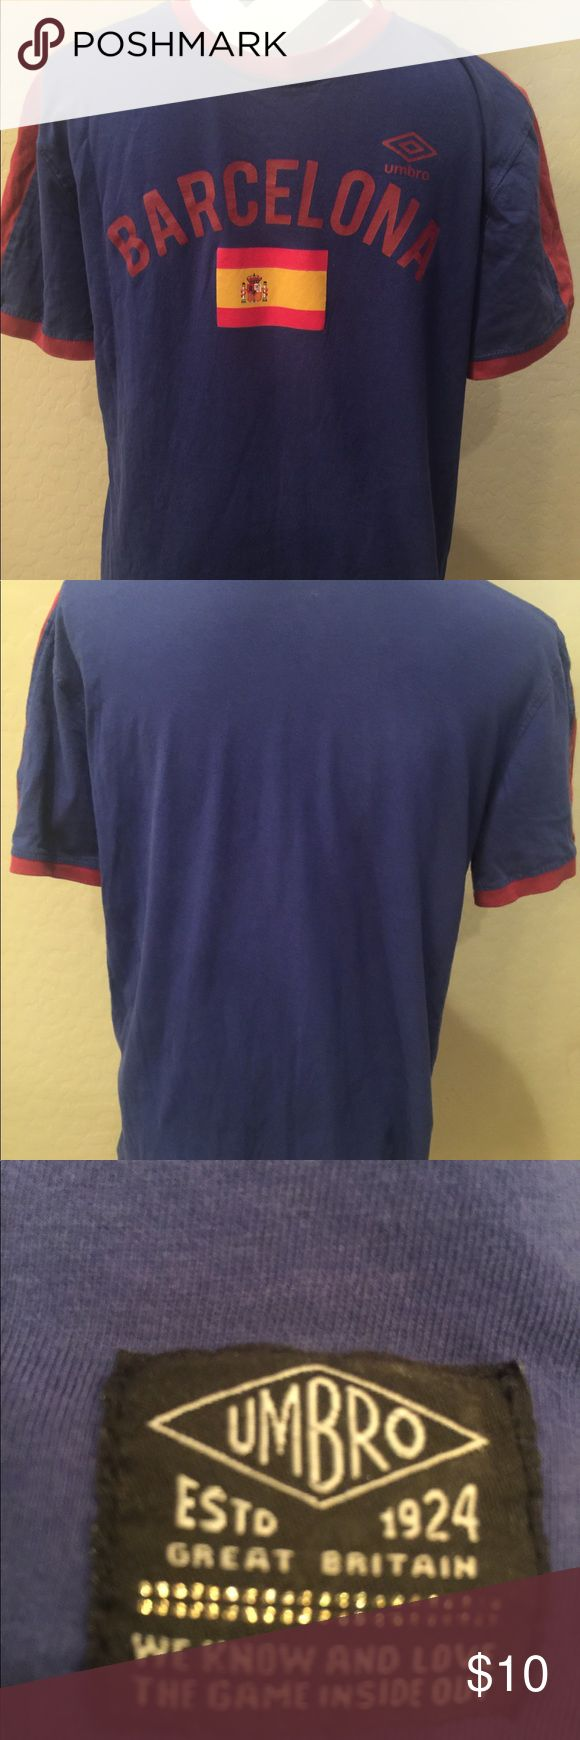 Authentic Umbro Blue & red Barcelona soccer tee Authentic Umbro Blue & red Barcelona soccer tee Size M excellent condition Umbro Shirts Tees - Short Sleeve